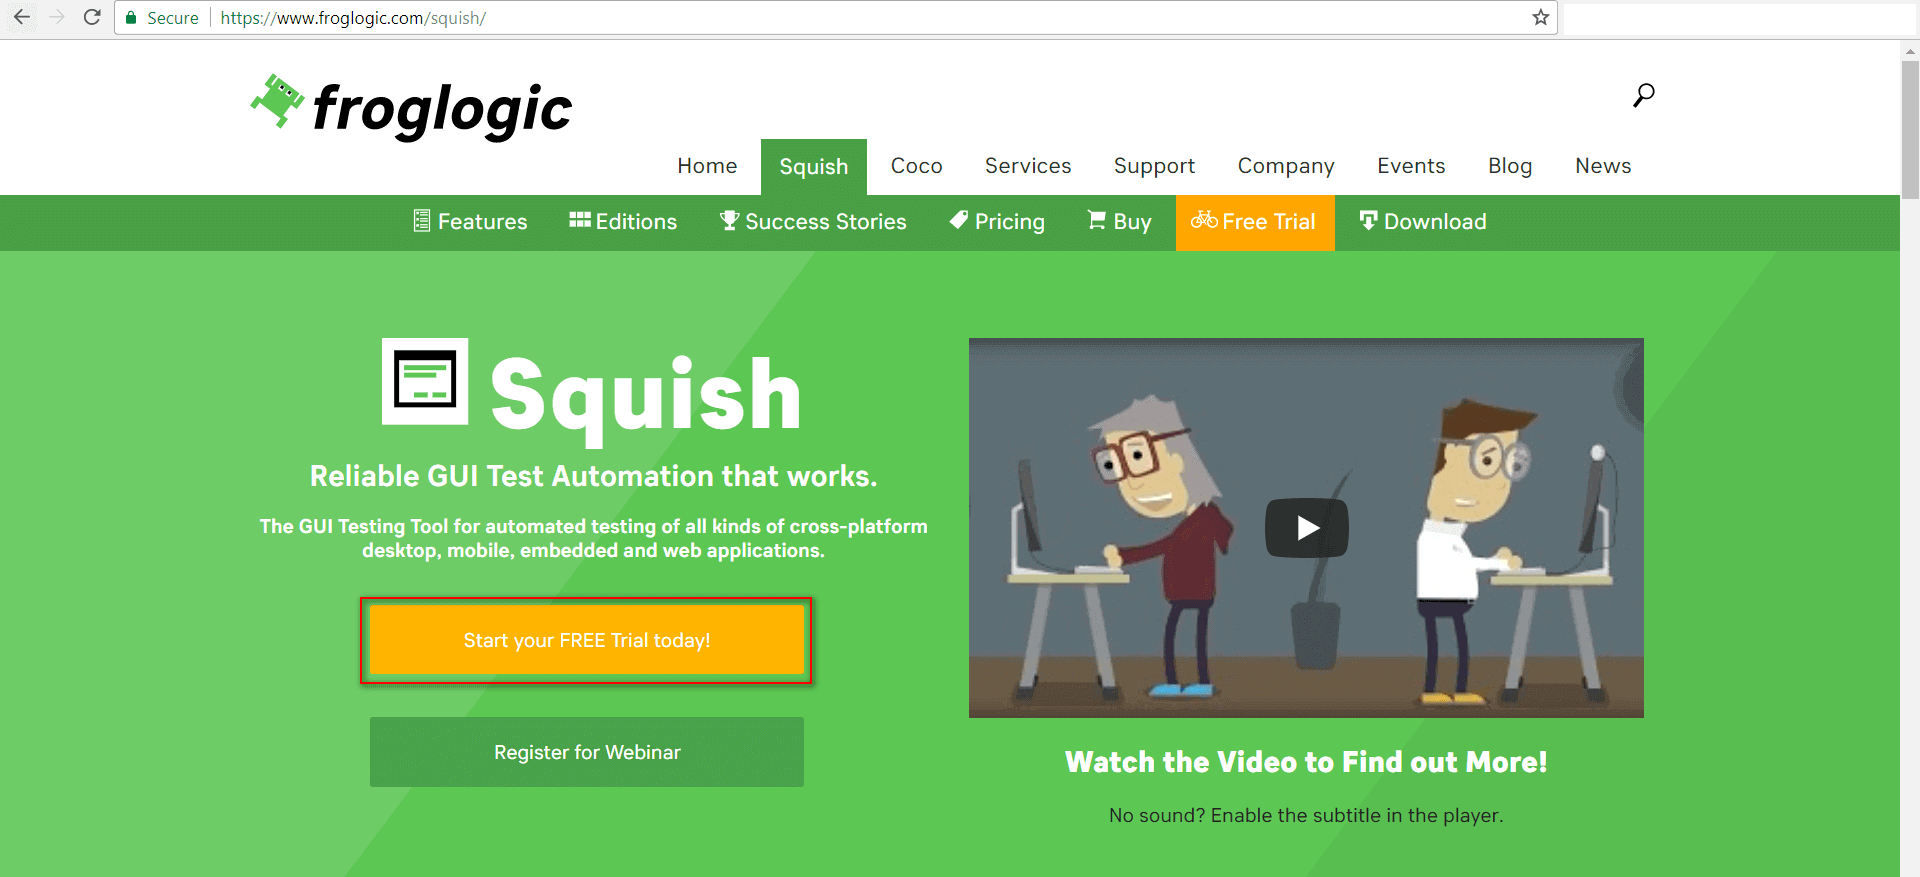 Froglogic Squish GUI Automation Tool | A Review By Software